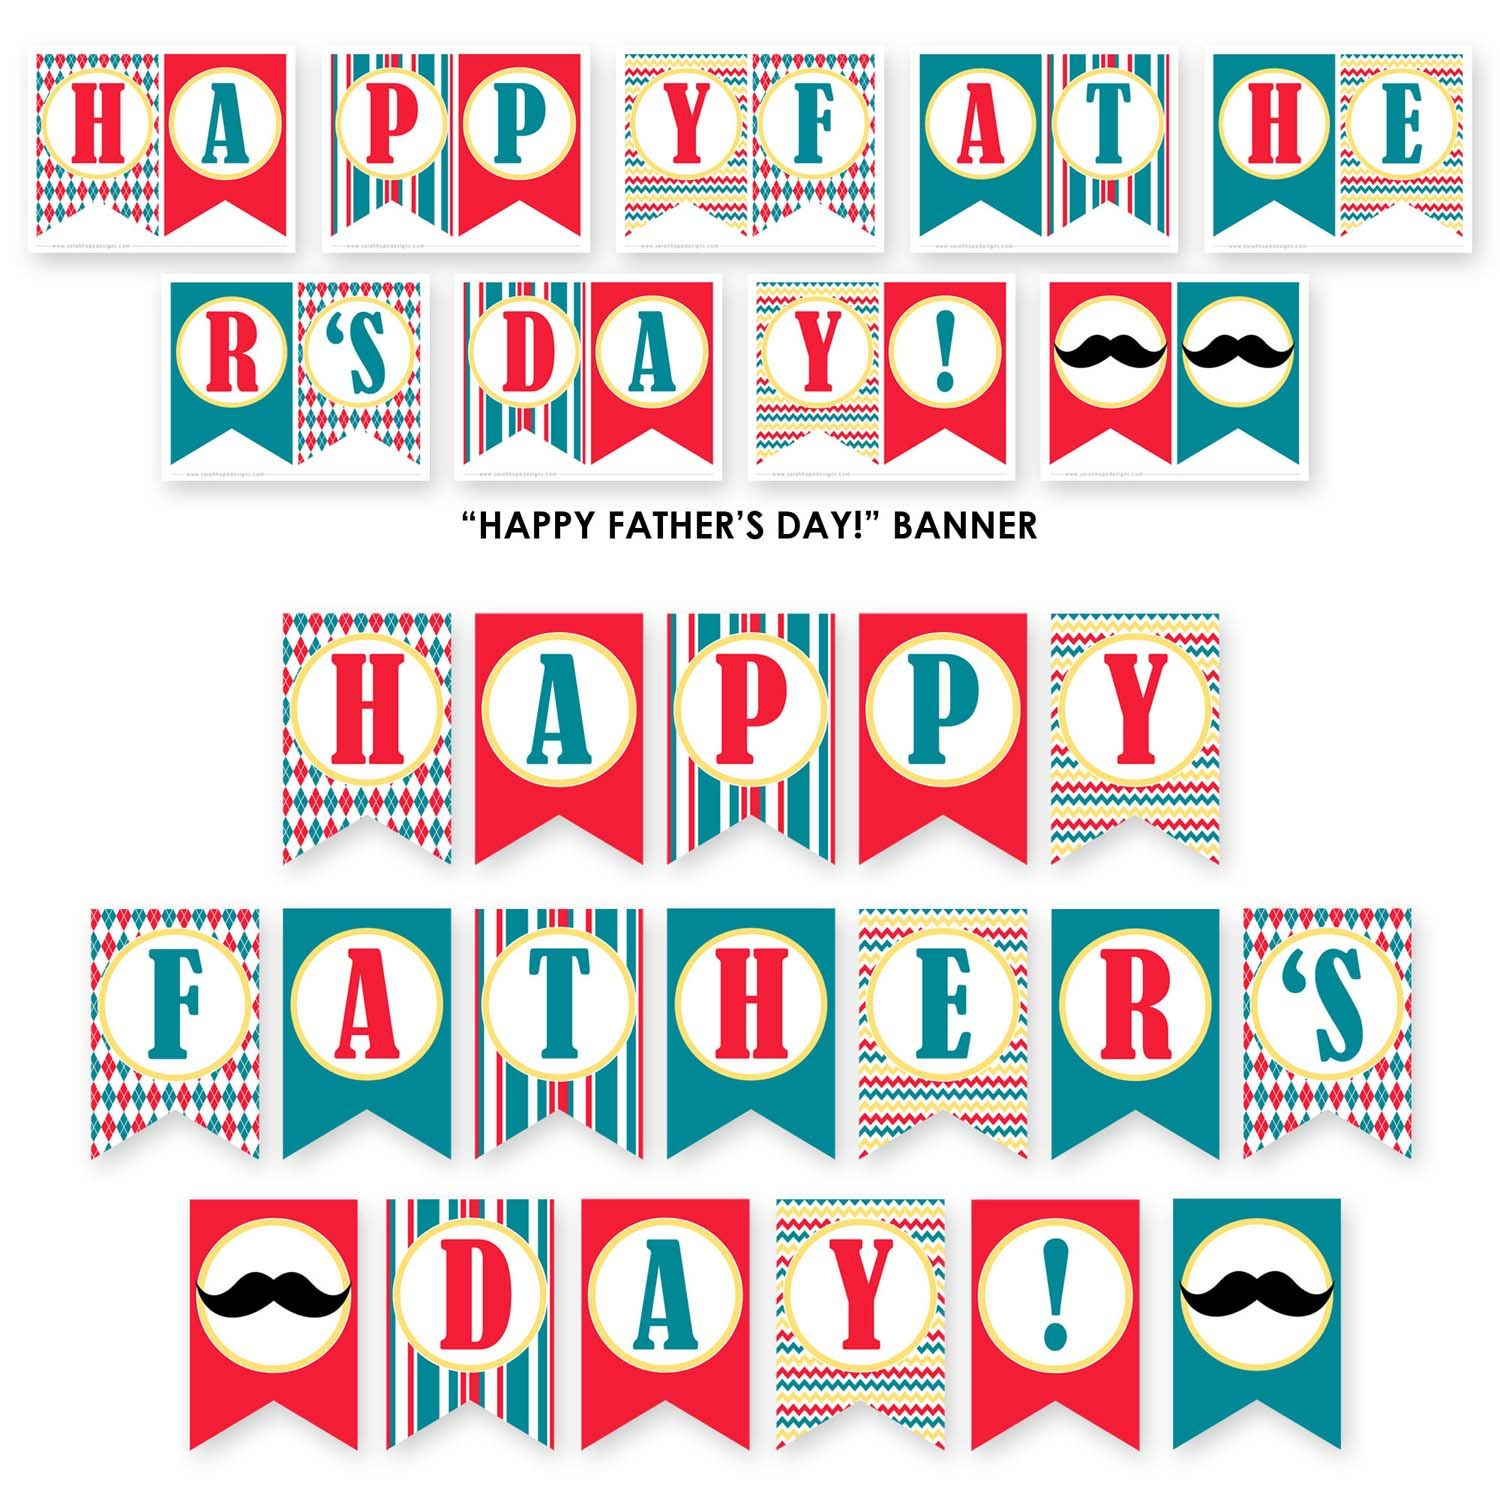 2012-FATHERSDAY-LIST-2.jpg 1 500 × 1 500 pixels